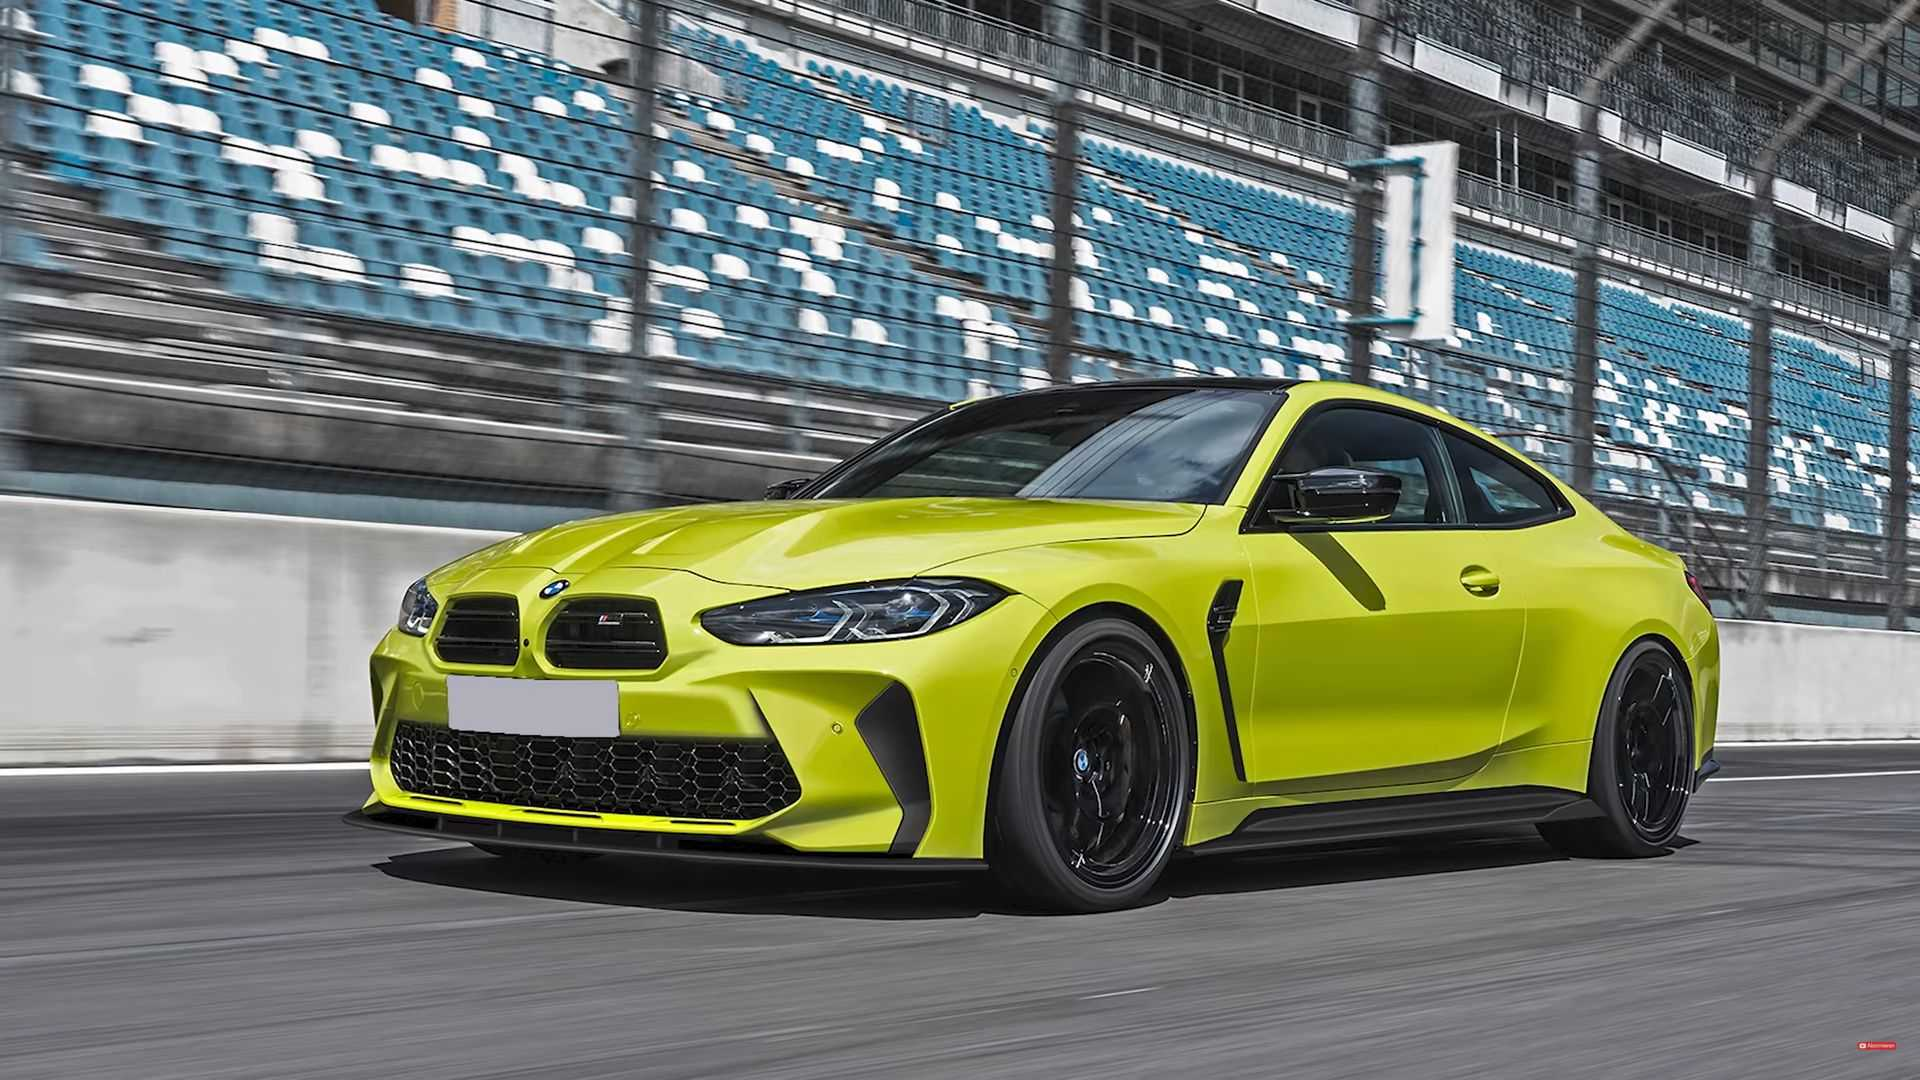 Bmw M4 S Massive Grille Already Getting Aftermarket Makeovers